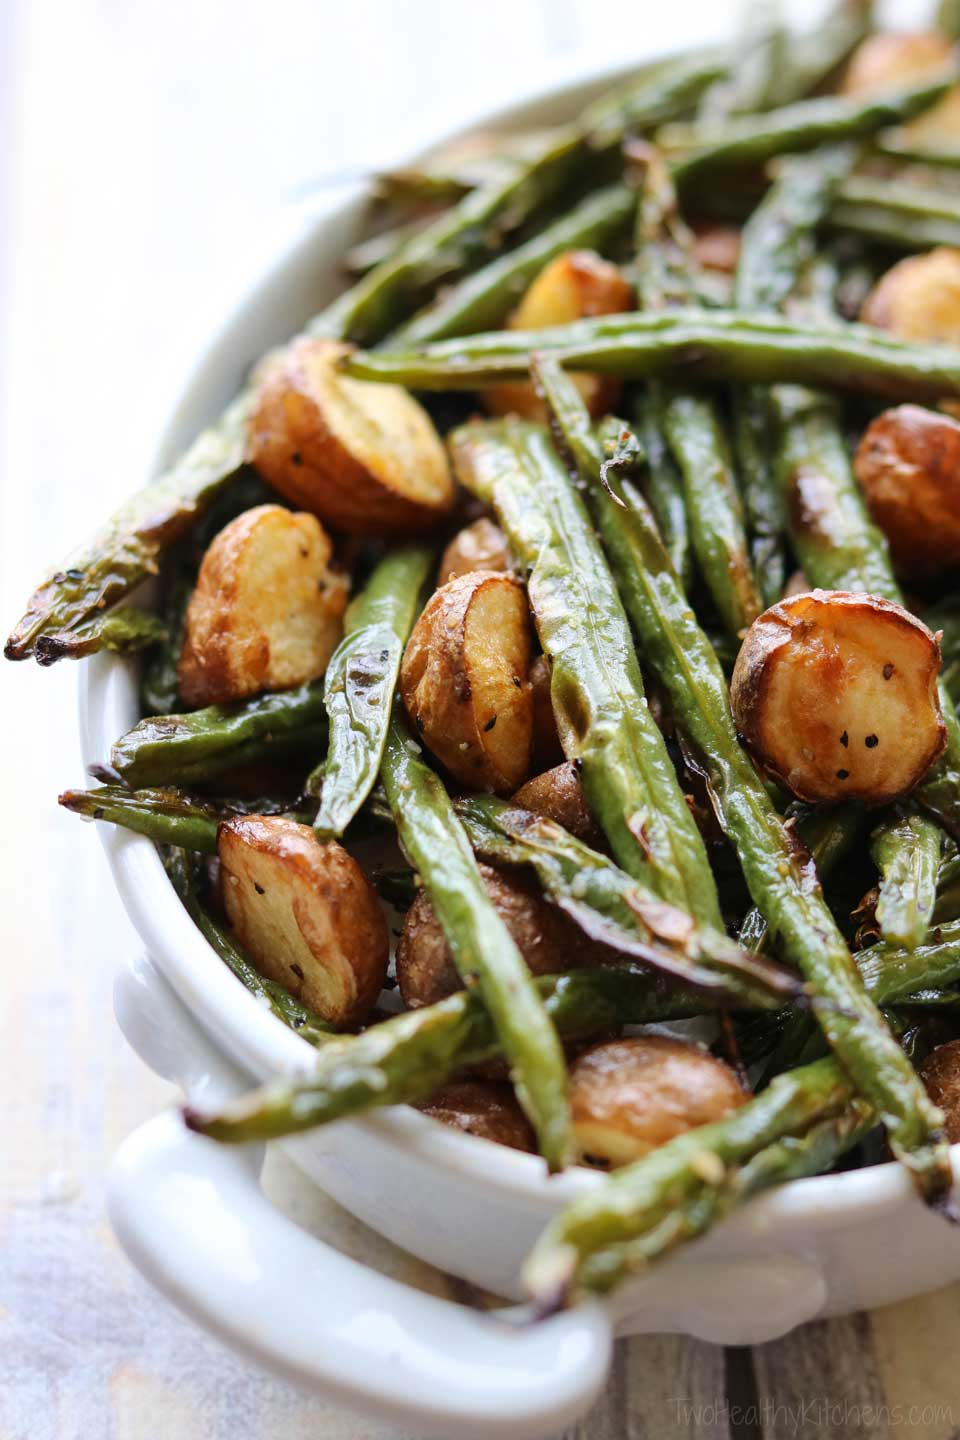 Best Thanksgiving Side Dish Recipes: Blistered Green Beans from Two Healthy Kitchens